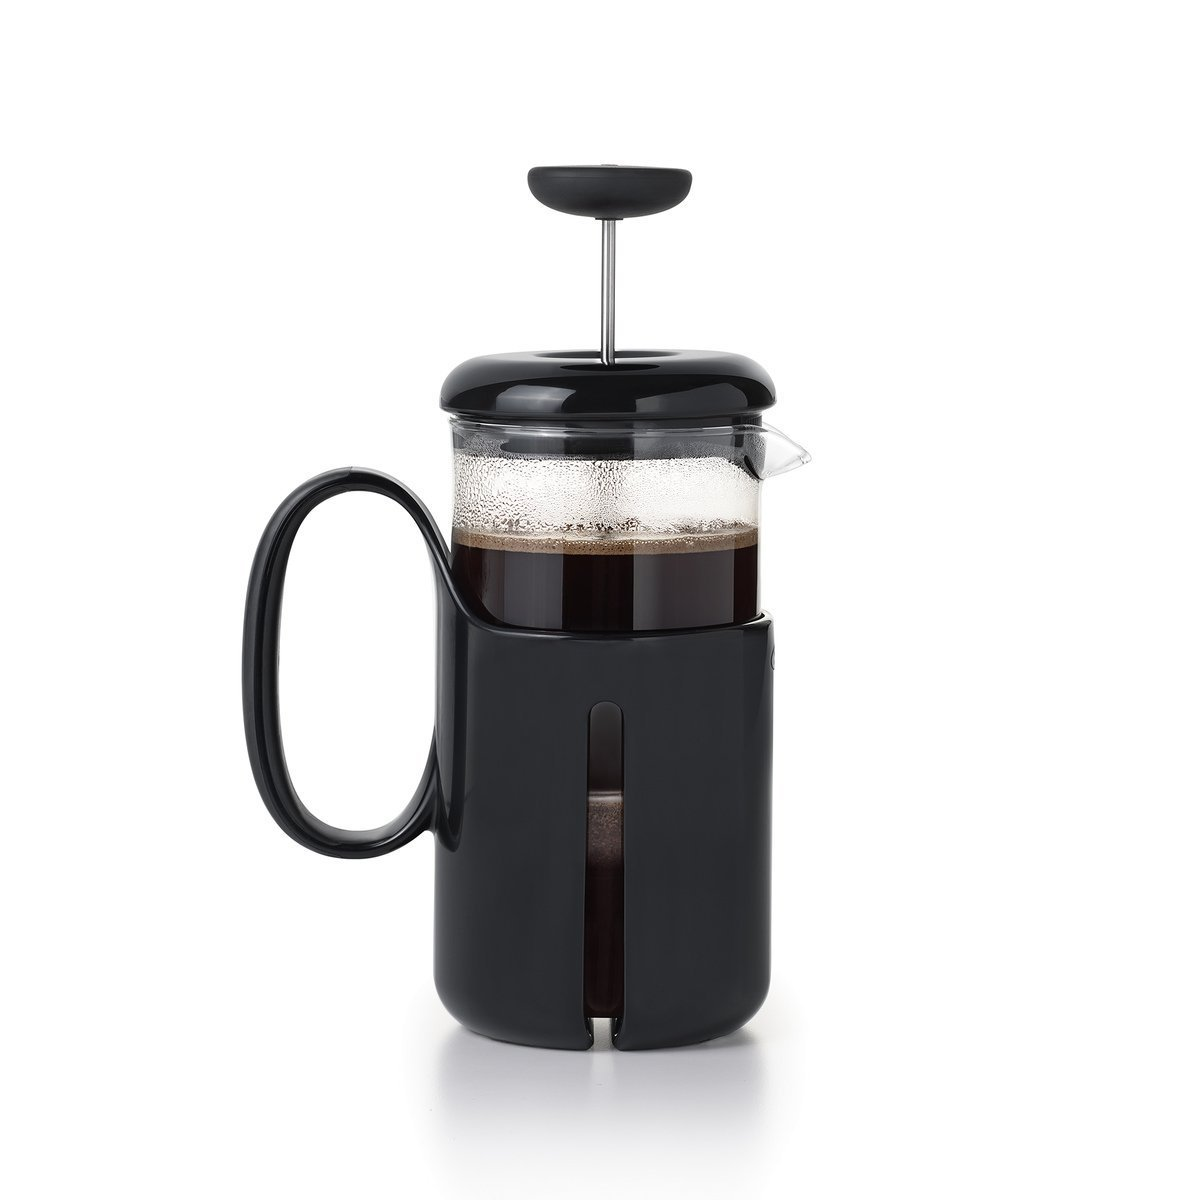 OXO Good Grips Venture Travel French Press with Shatterproof Tritan Carafe, 32 Ounce (8 Cups) by OXO (Image #4)